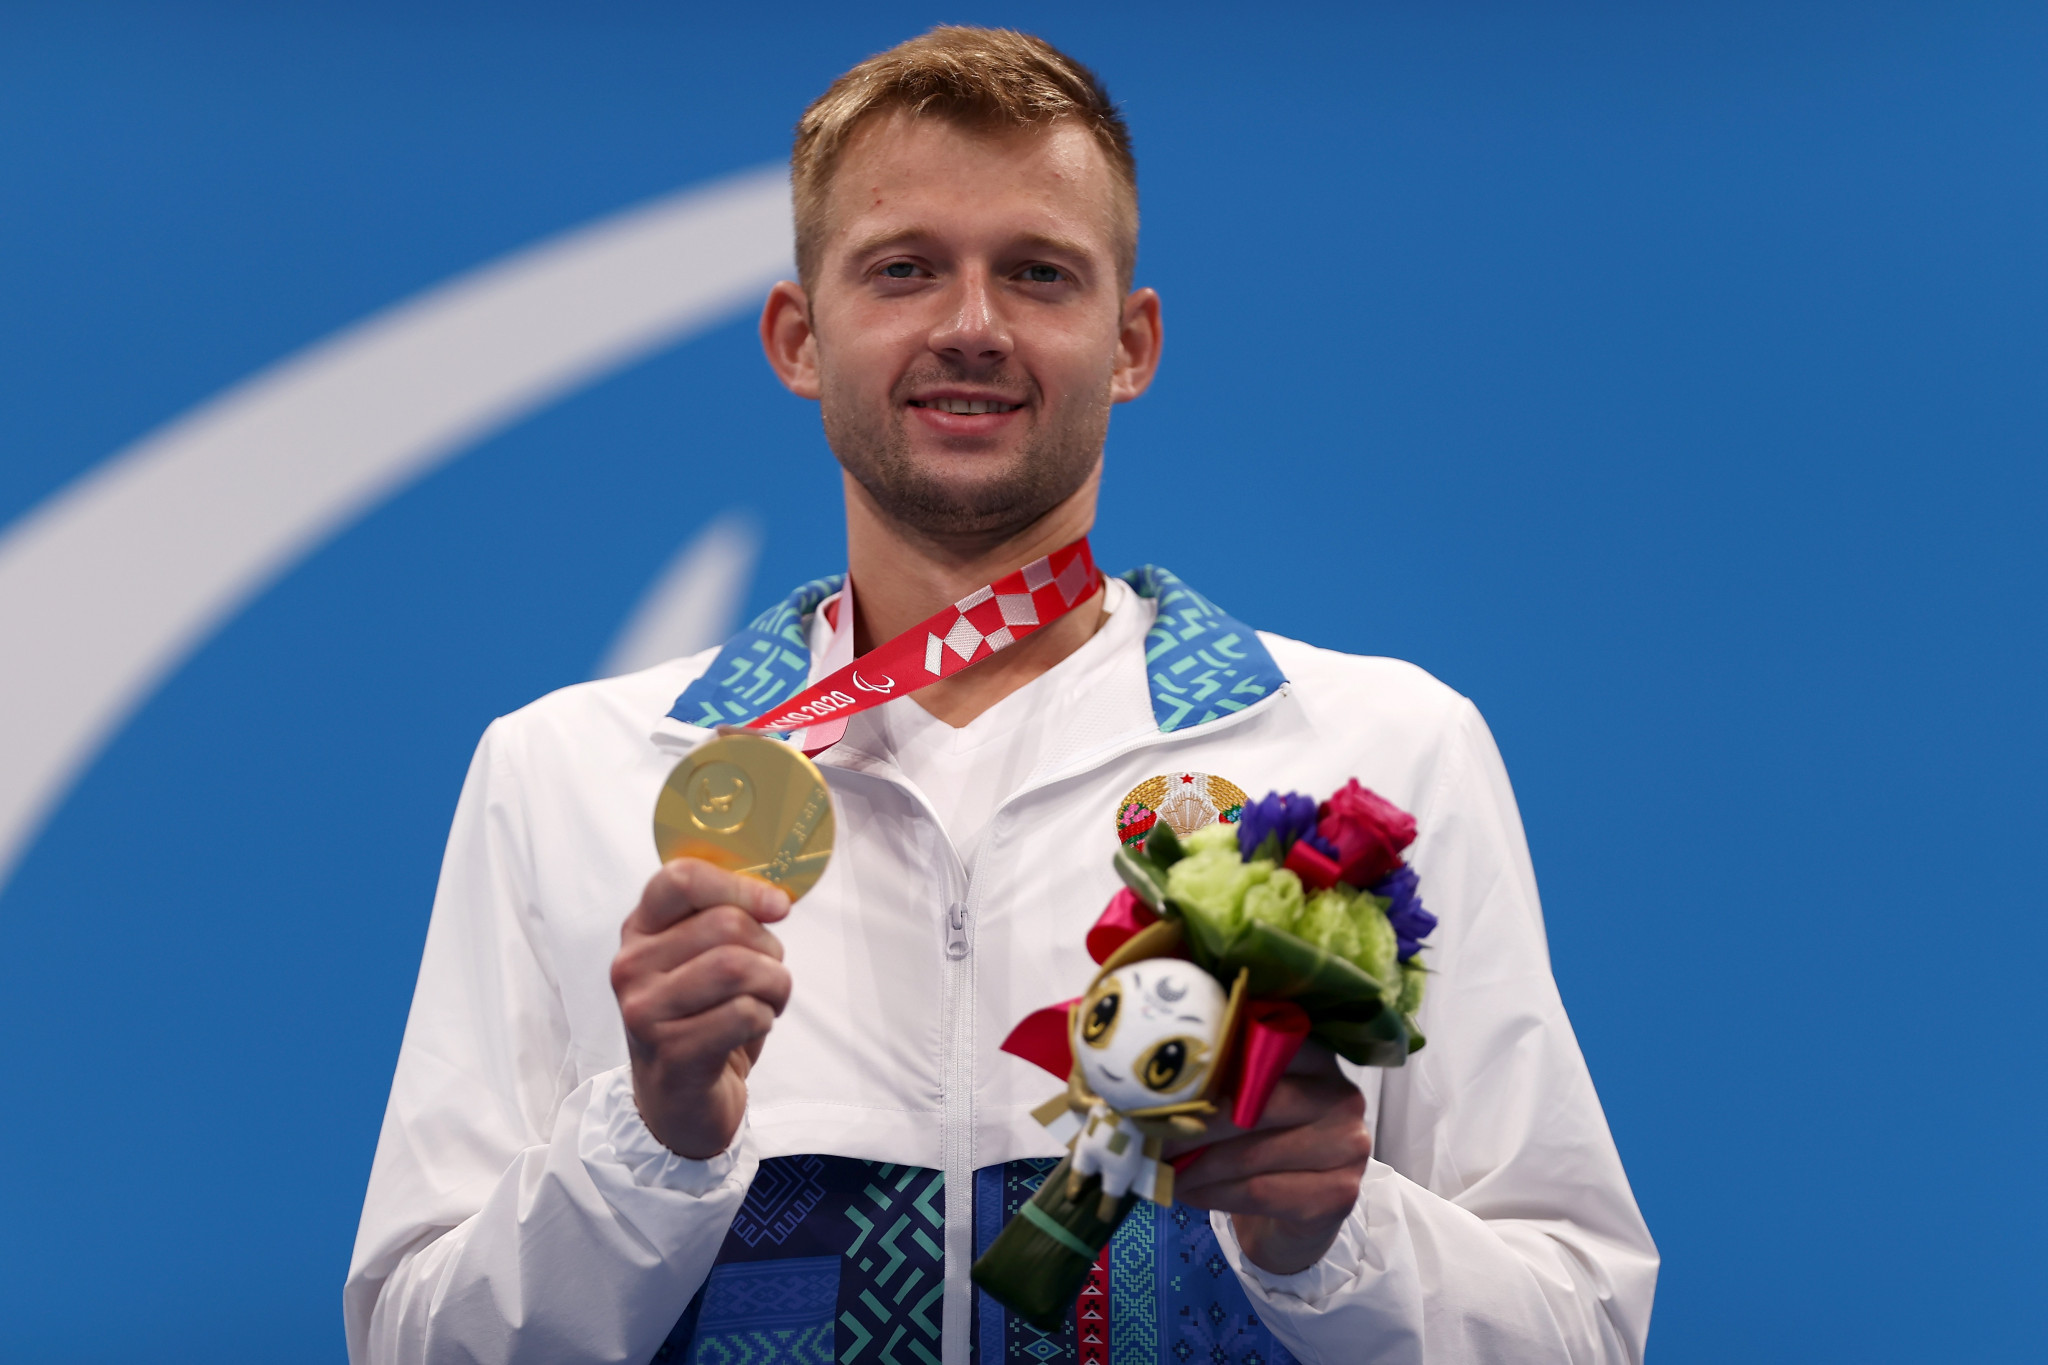 Ihar Boki collected the 14th Paralympic gold medal of his career and third at Tokyo 2020 ©Getty Images